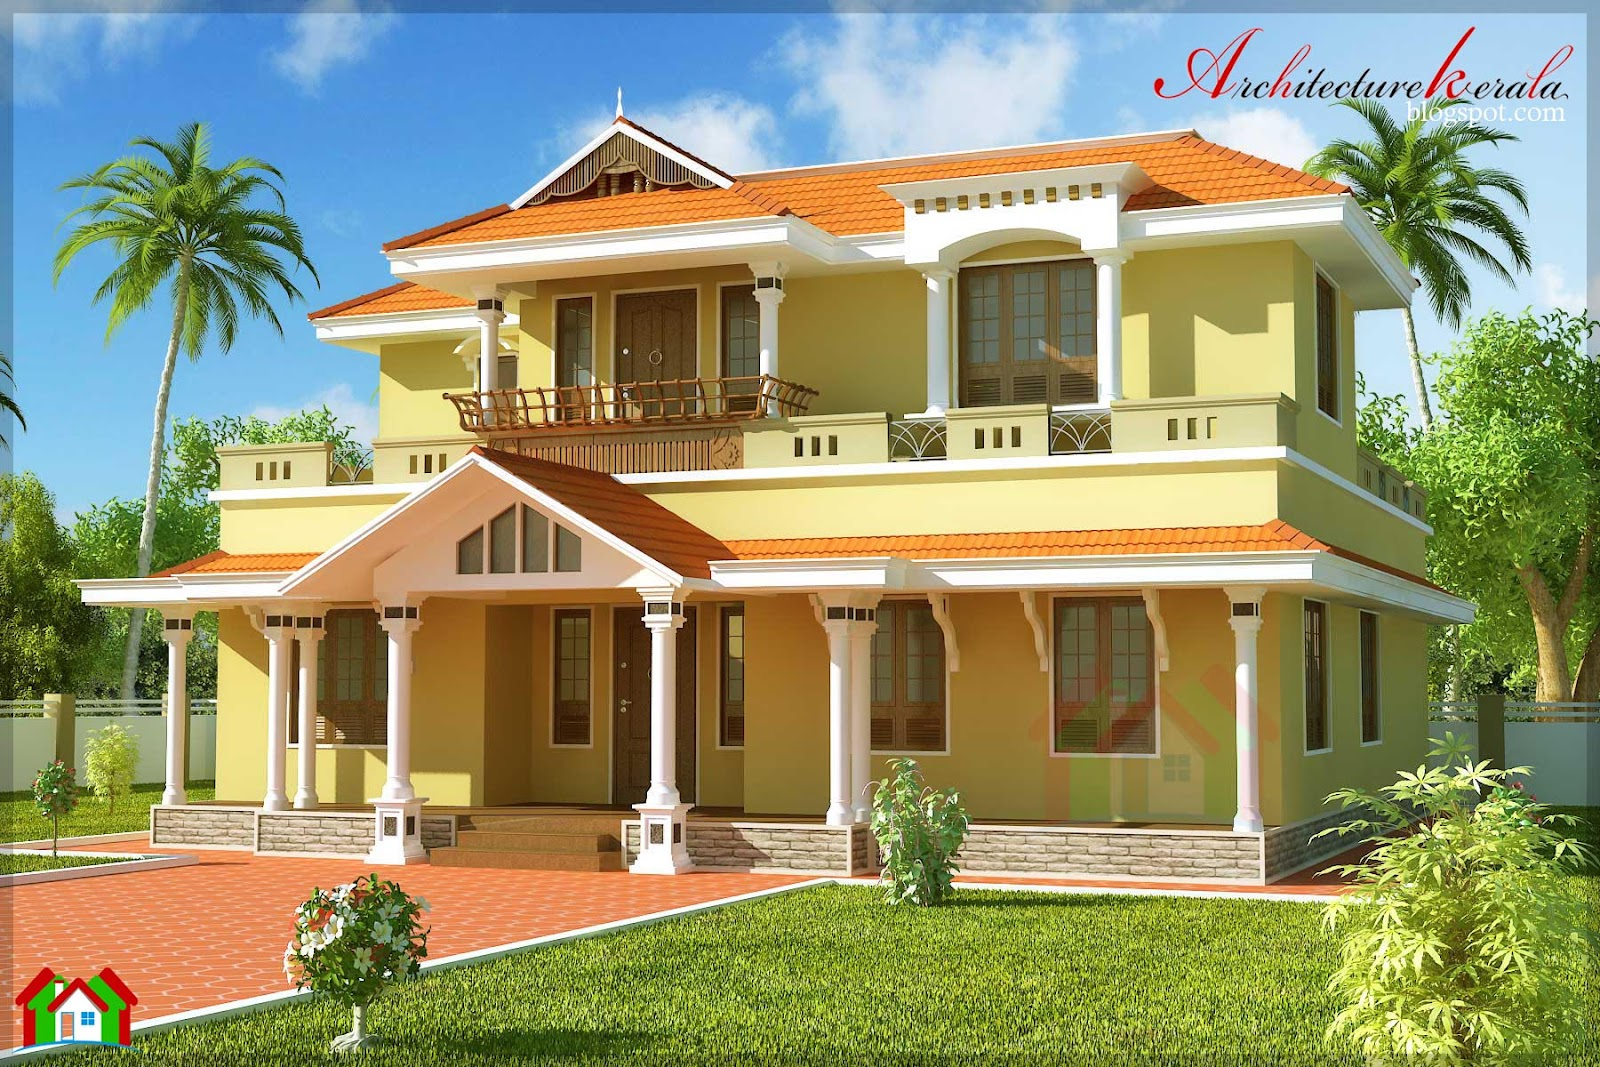 Architecture kerala 2500 square feet traditional style for Traditional house architecture